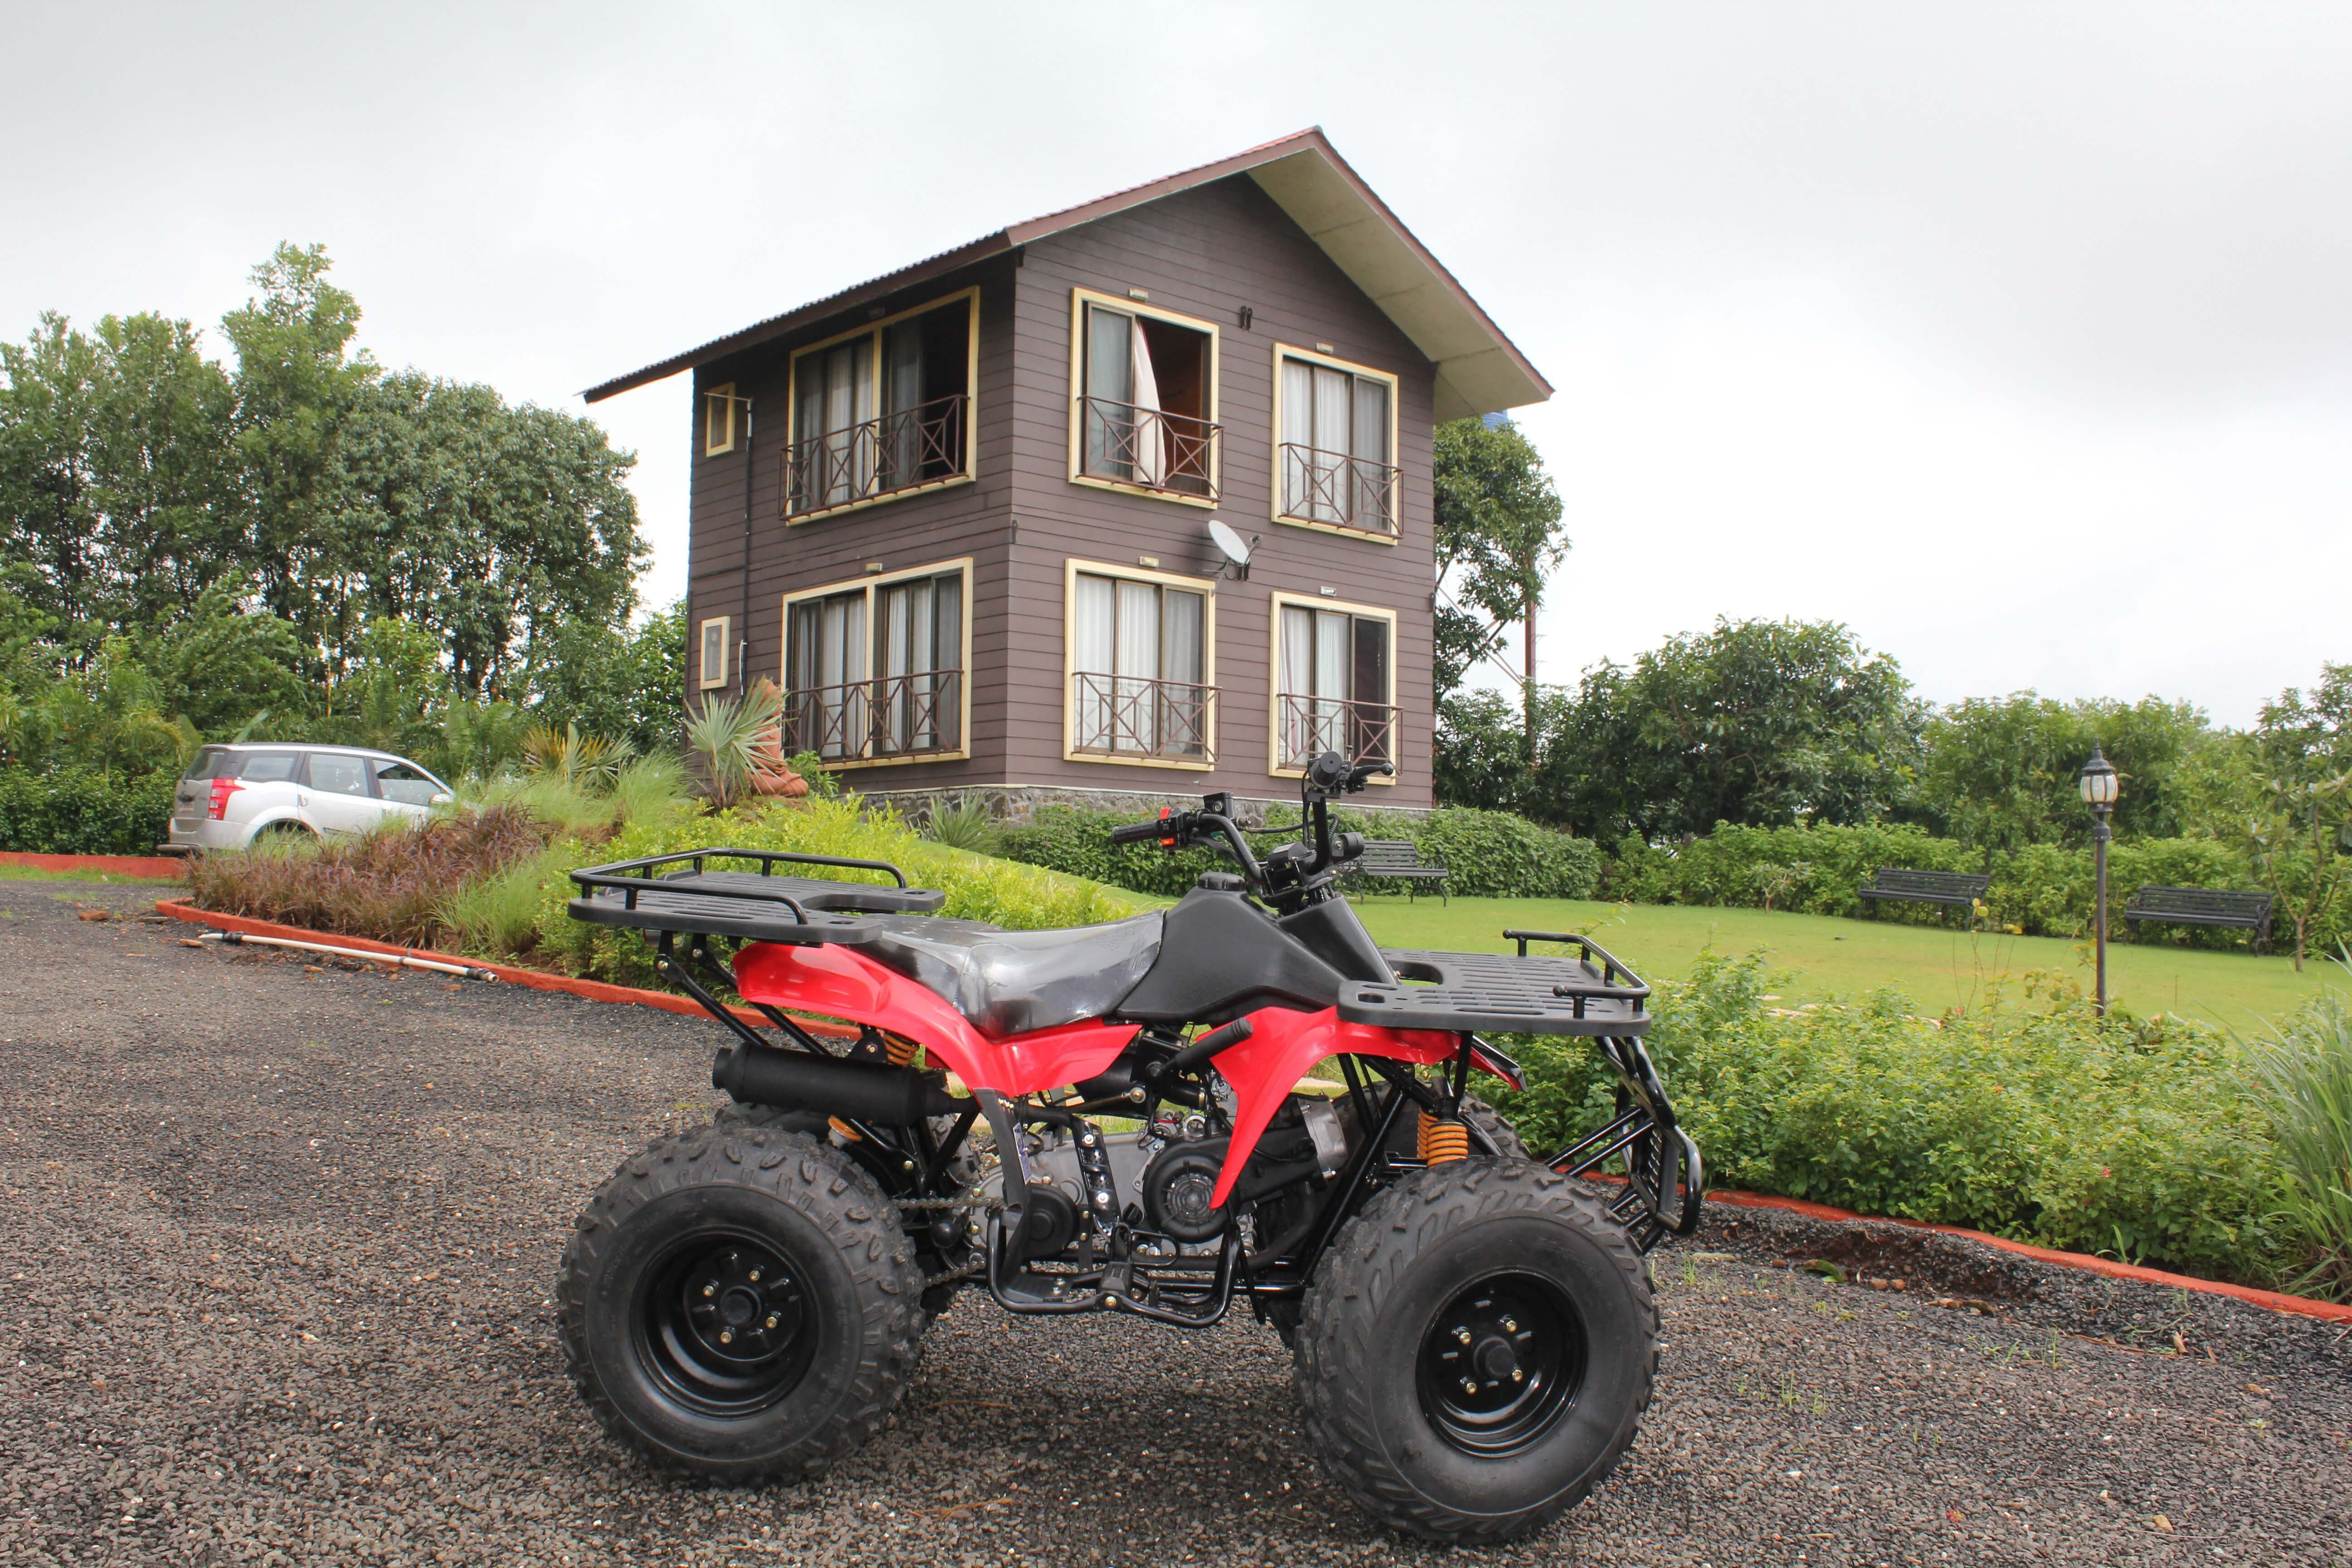 ATV with the Swiss Chalet